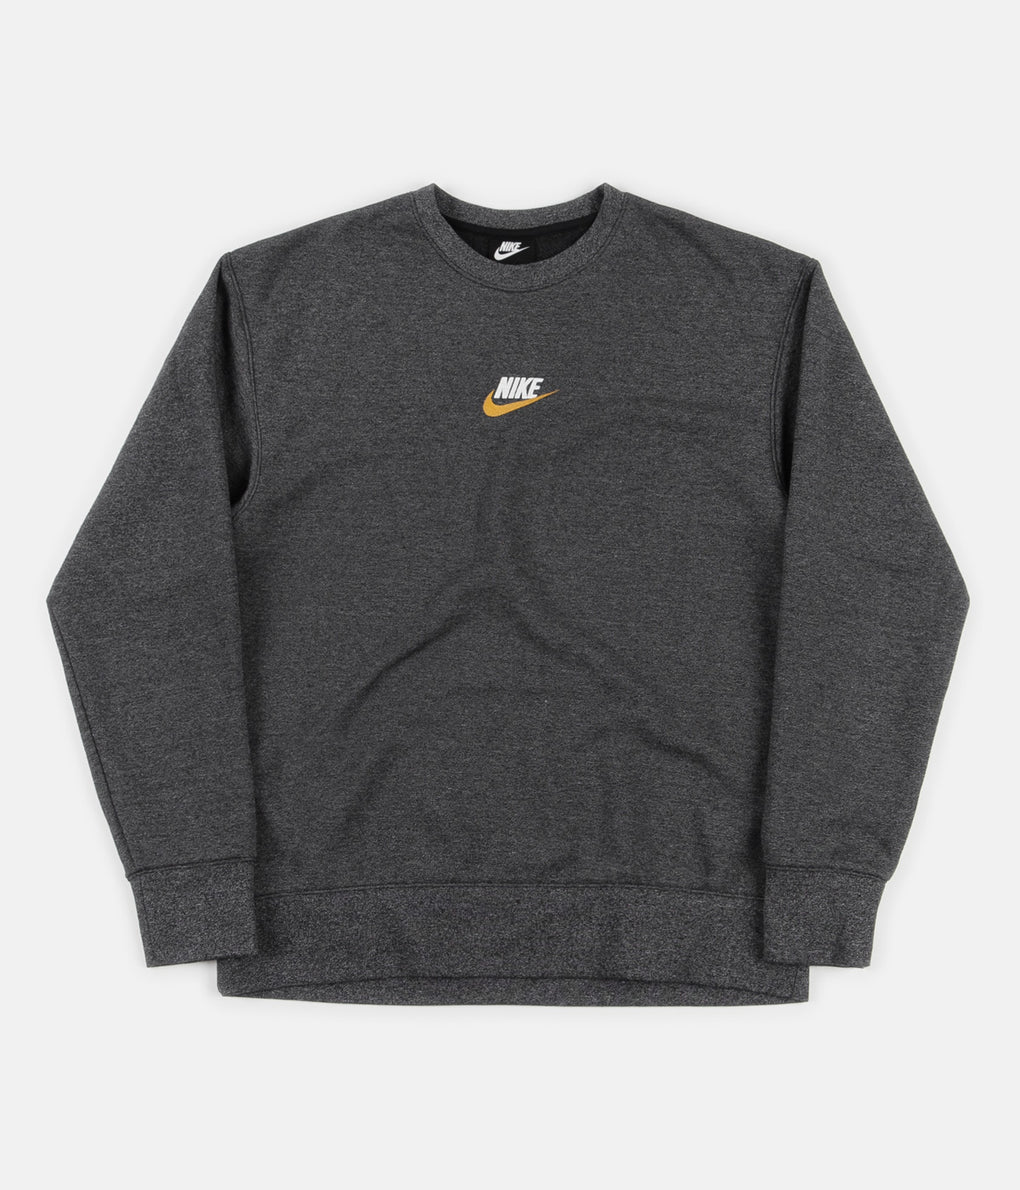 Nike Heritage Crewneck Sweatshirt - Black / Heather